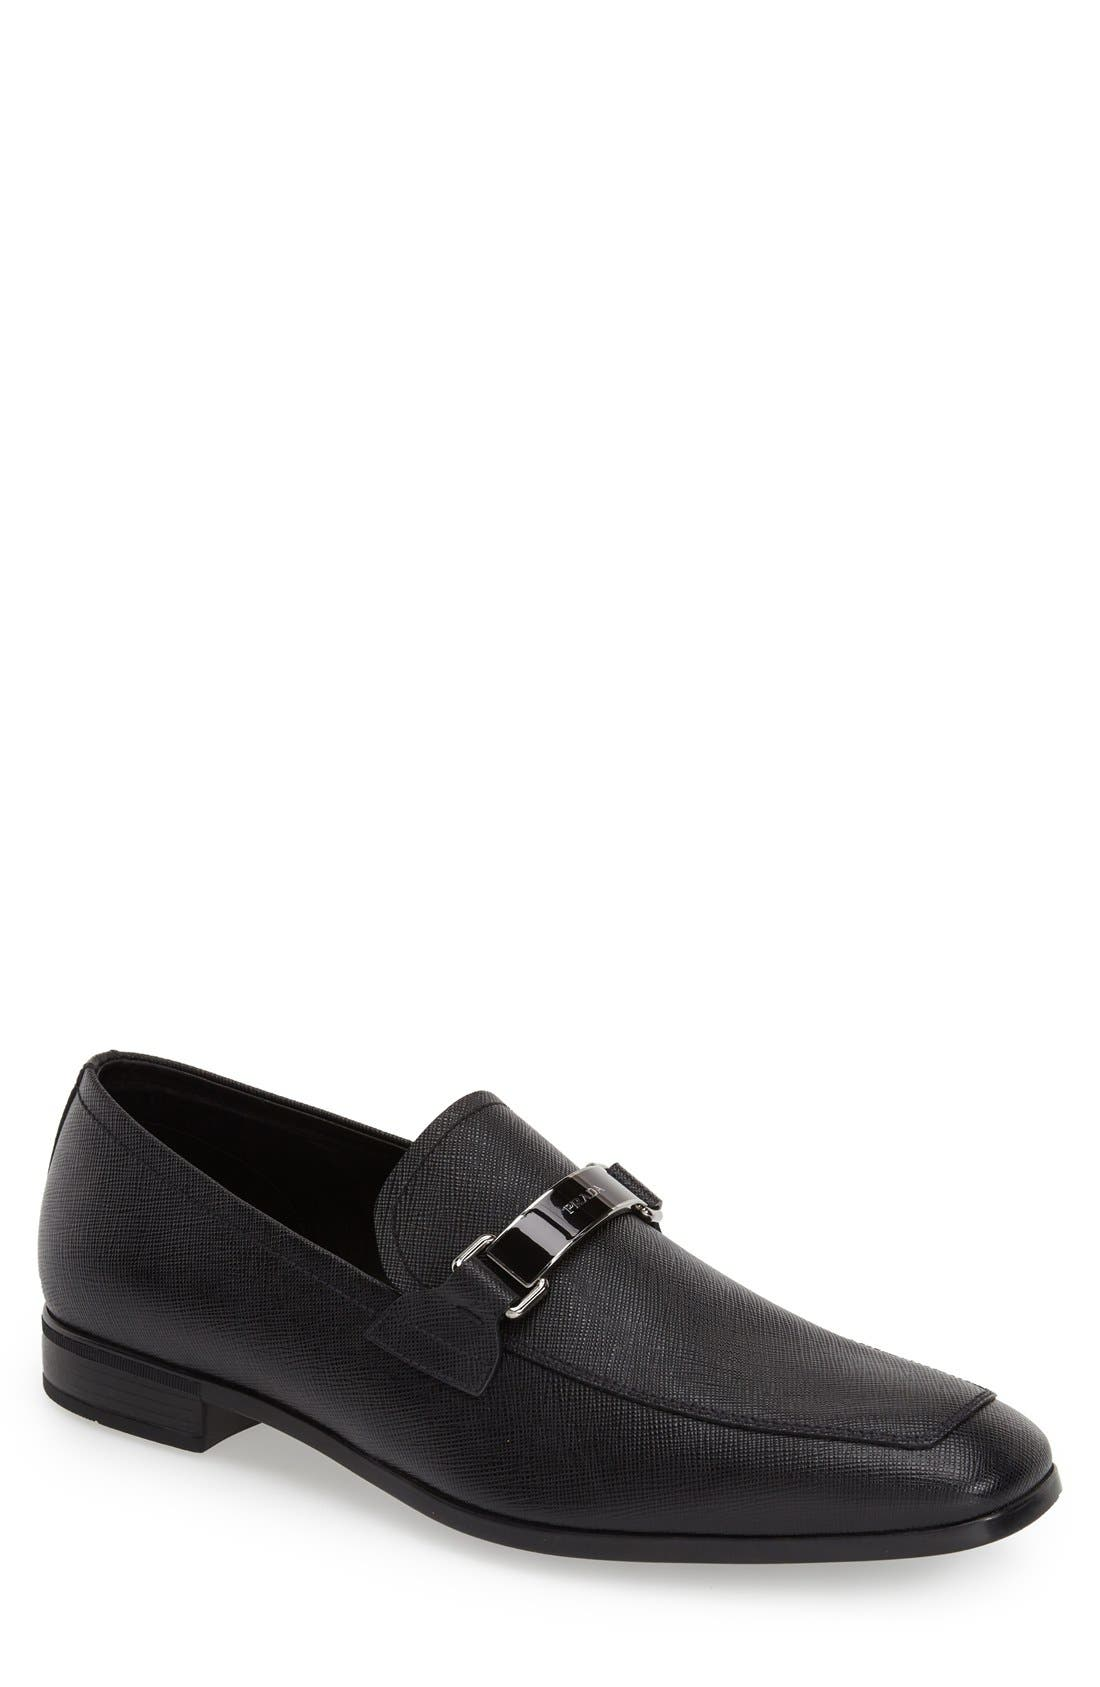 Saffiano Leather Bit Loafer,                             Main thumbnail 1, color,                             Nero Leather